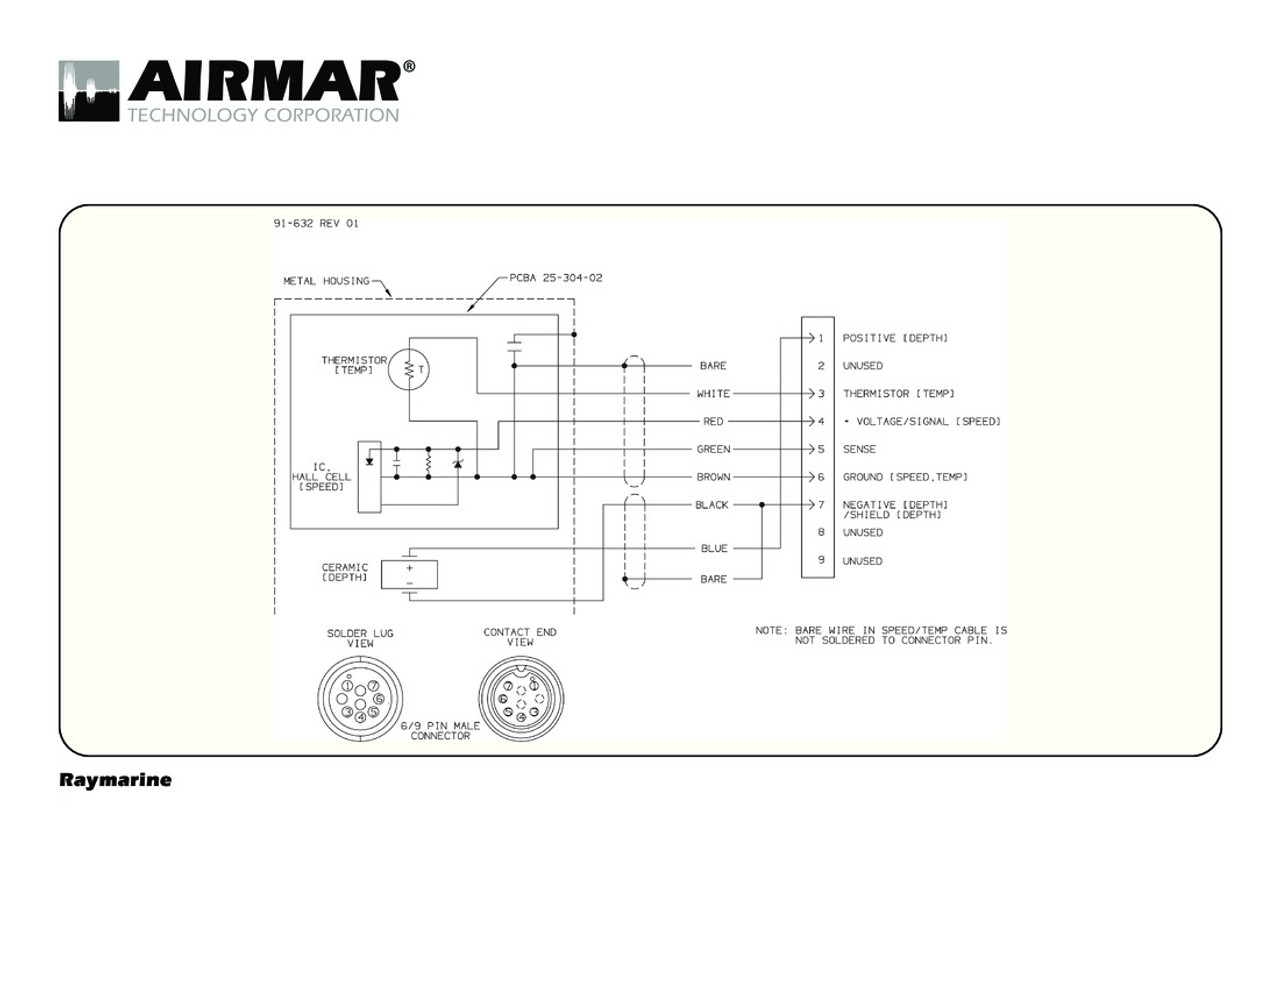 9 Pin Wiring Diagram Content Resource Of Ducati Monza Airmar Raymarine A Series Blue Bottle Marine Rh Bluebottlemarine Com